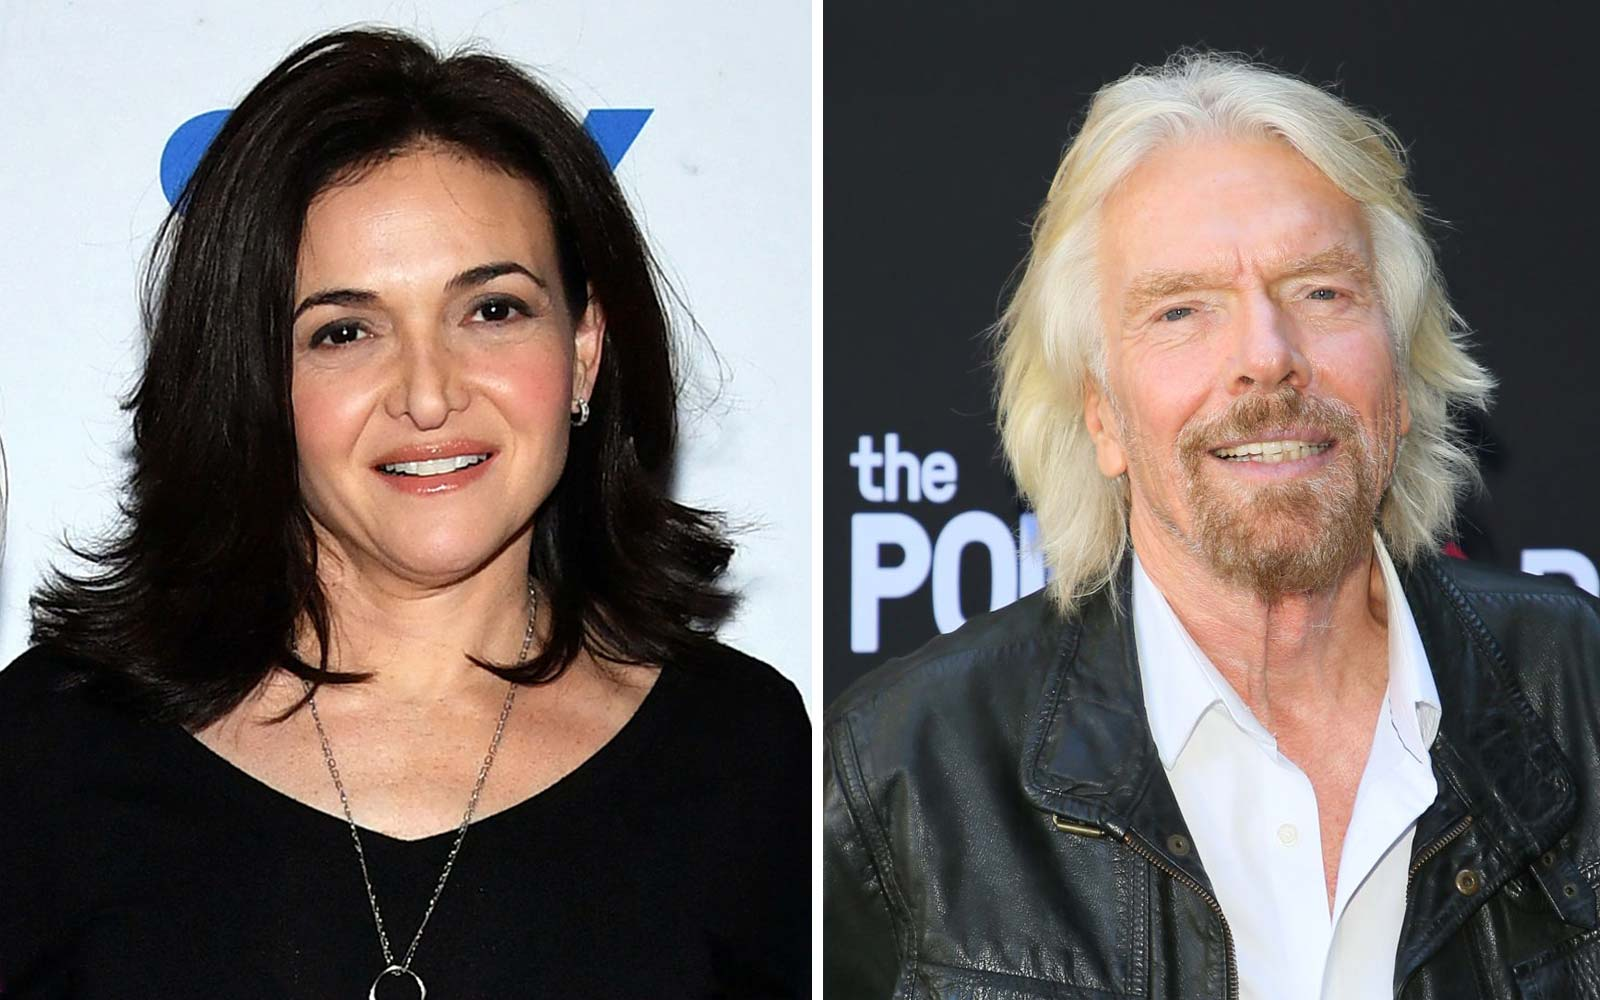 Richard Branson, Sheryl Sandberg, Bill Gates, and Other Tech Leaders Reveal the Advice They Would Give Their Younger Selves